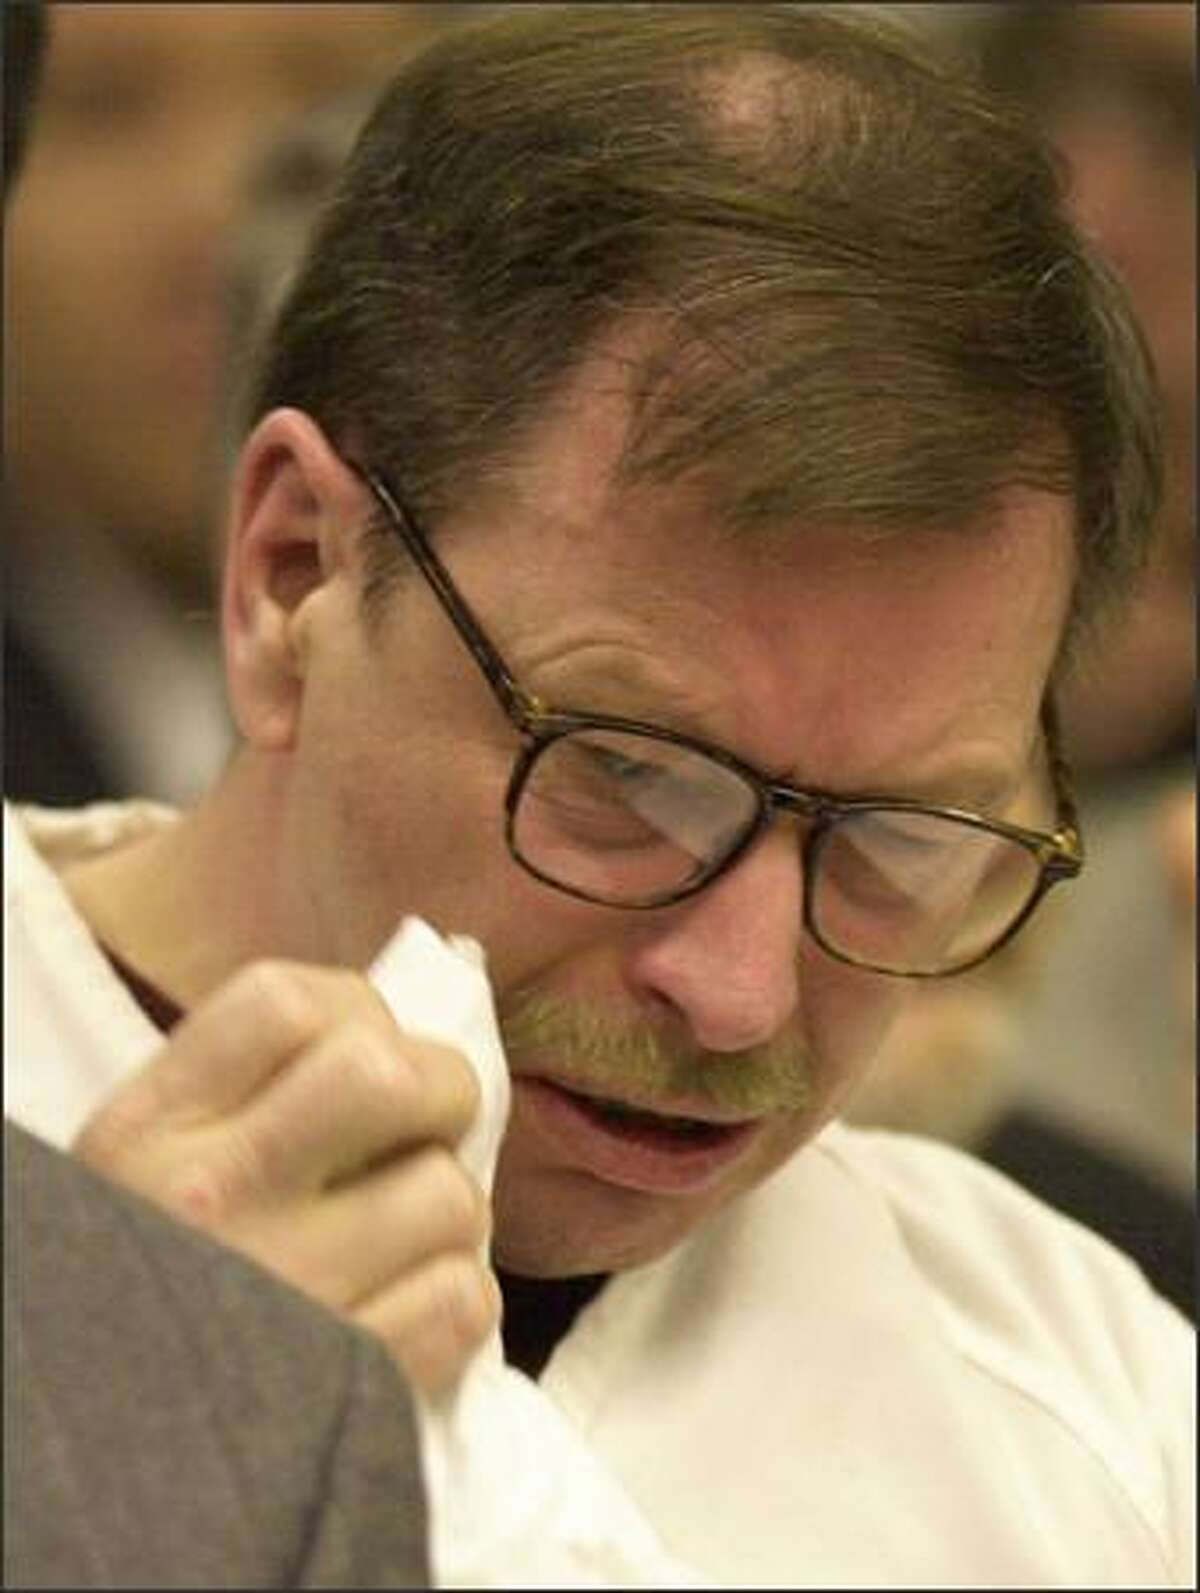 """Gary Ridgway apologized """"for putting a scare in the community"""" and will spend the rest of his life in solitary confinement for murdering 48 women."""